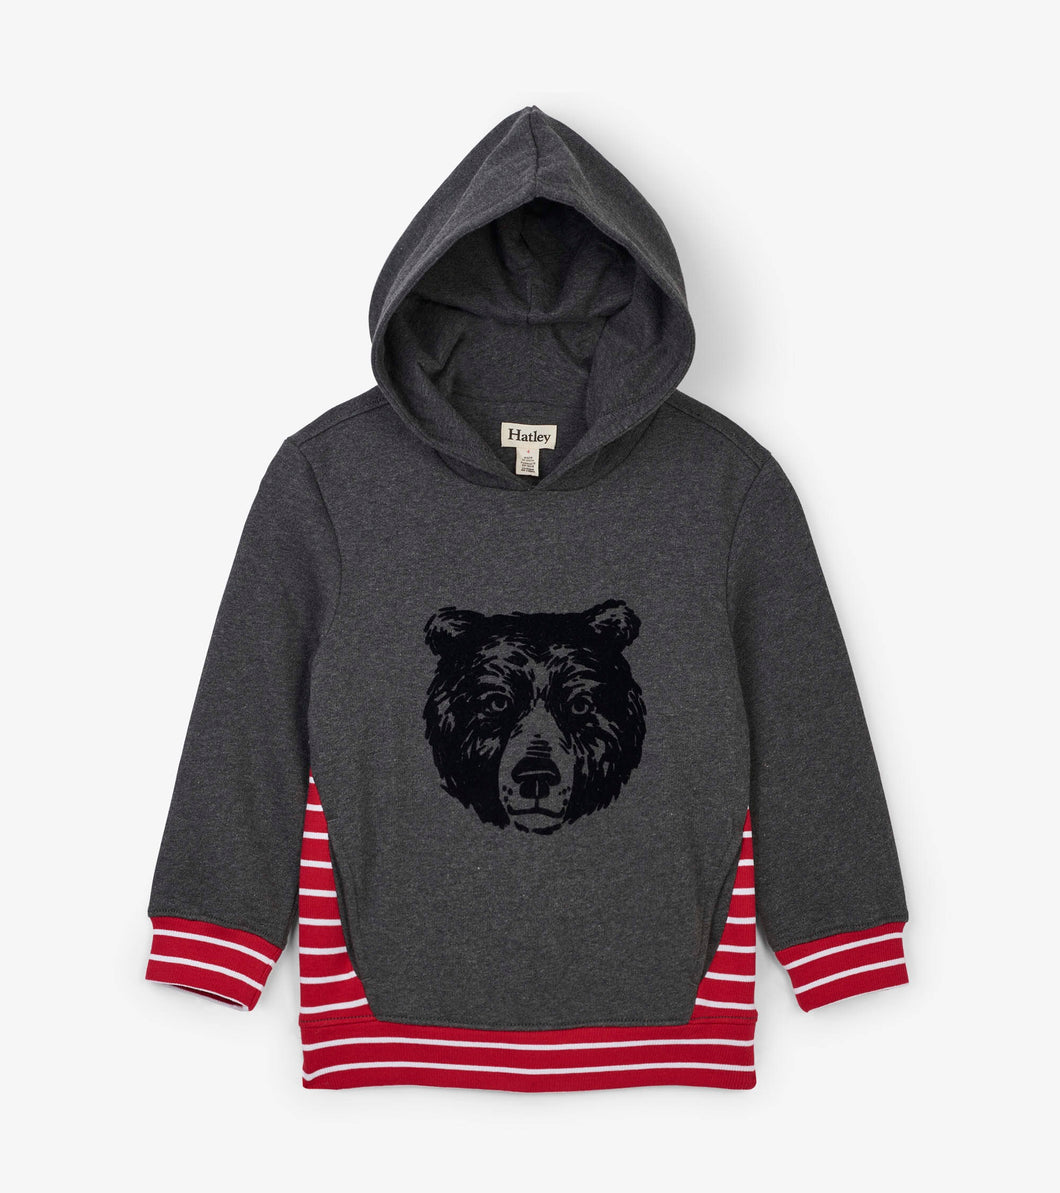 Hatley grizzly bear hoodie hooded pullover